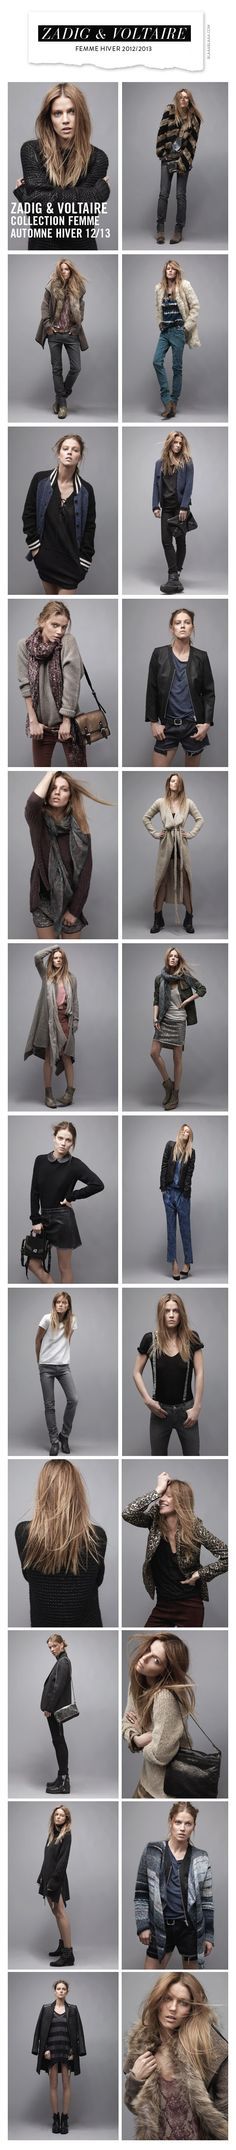 Zadig & Voltaire Woman Fall Winter 2012/2013